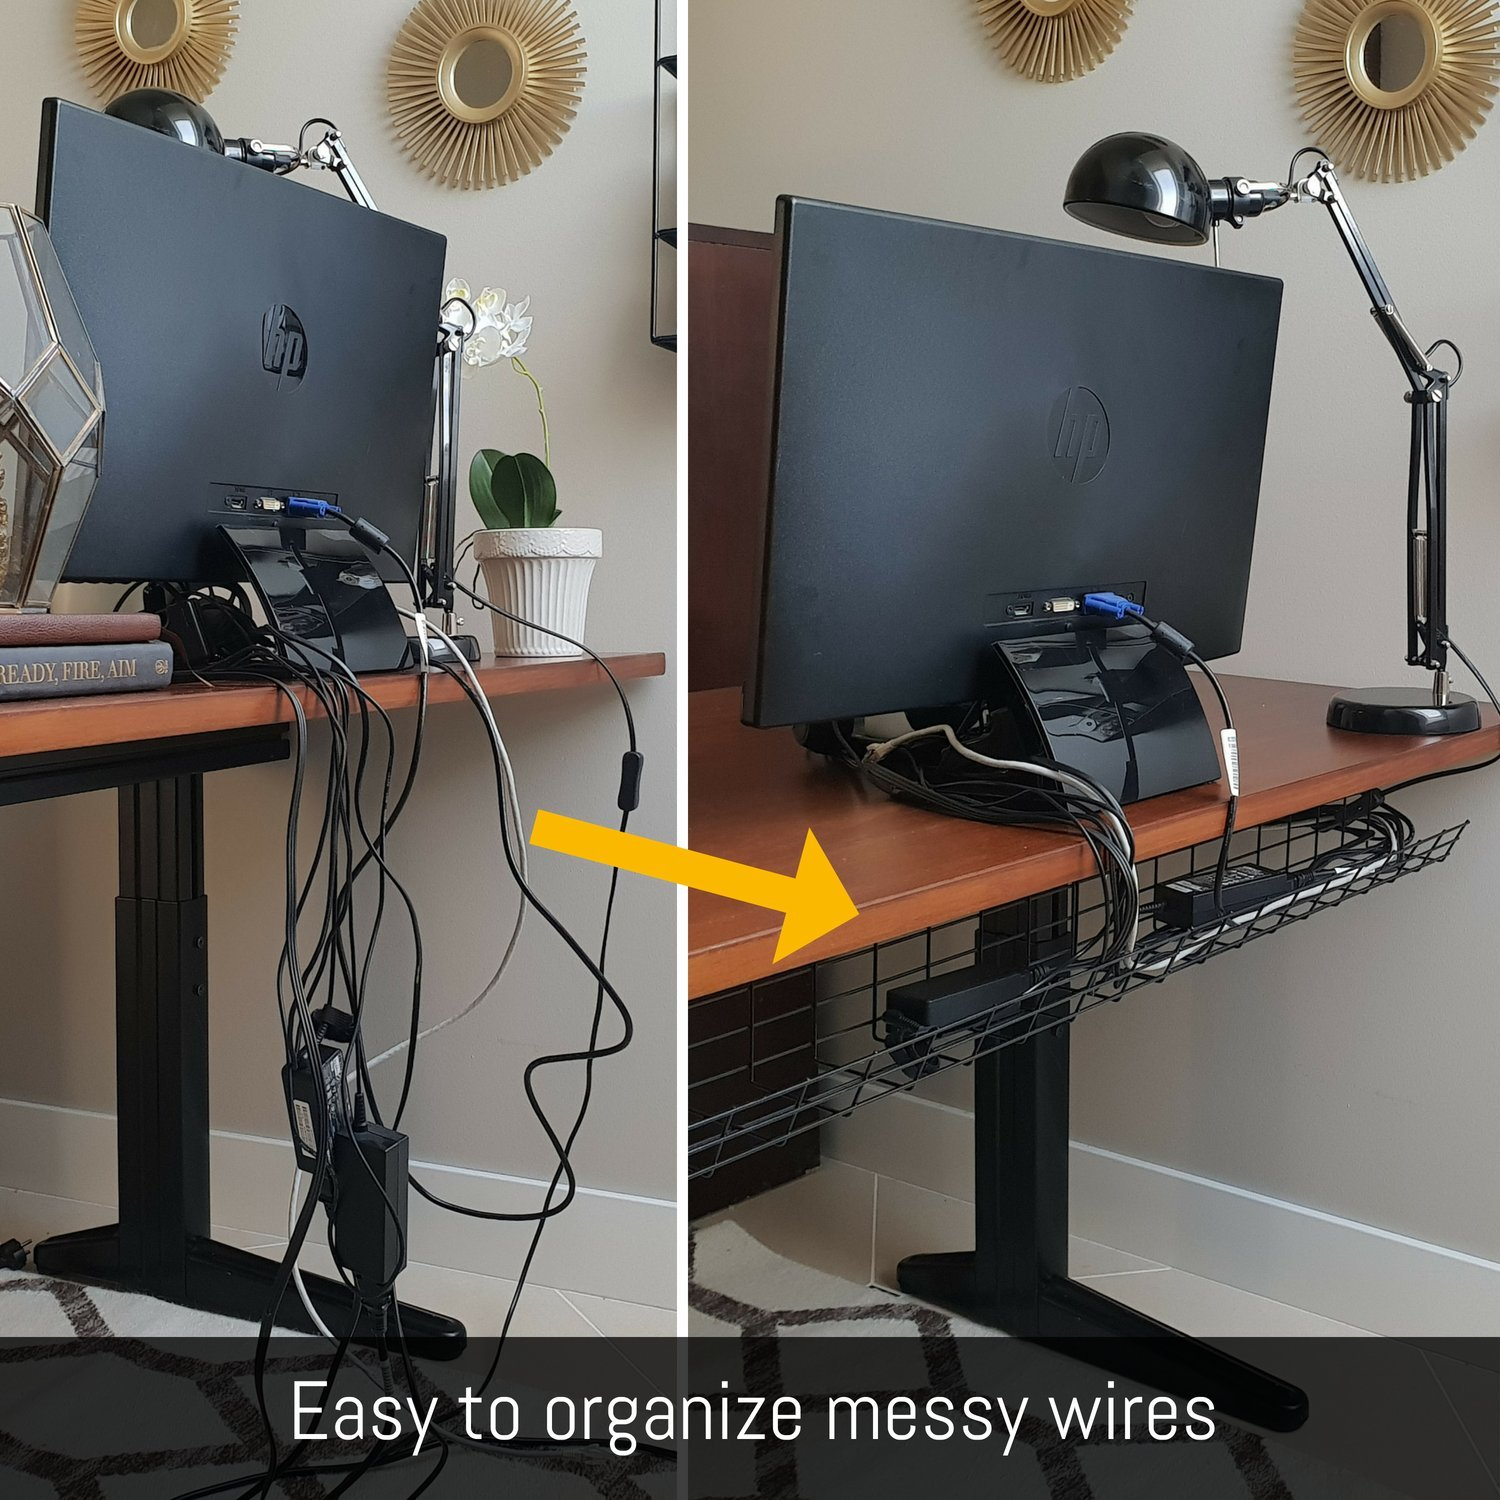 Details about Under Desk Cable Management Tray - Cable Organizer for Wire  Management. Metal